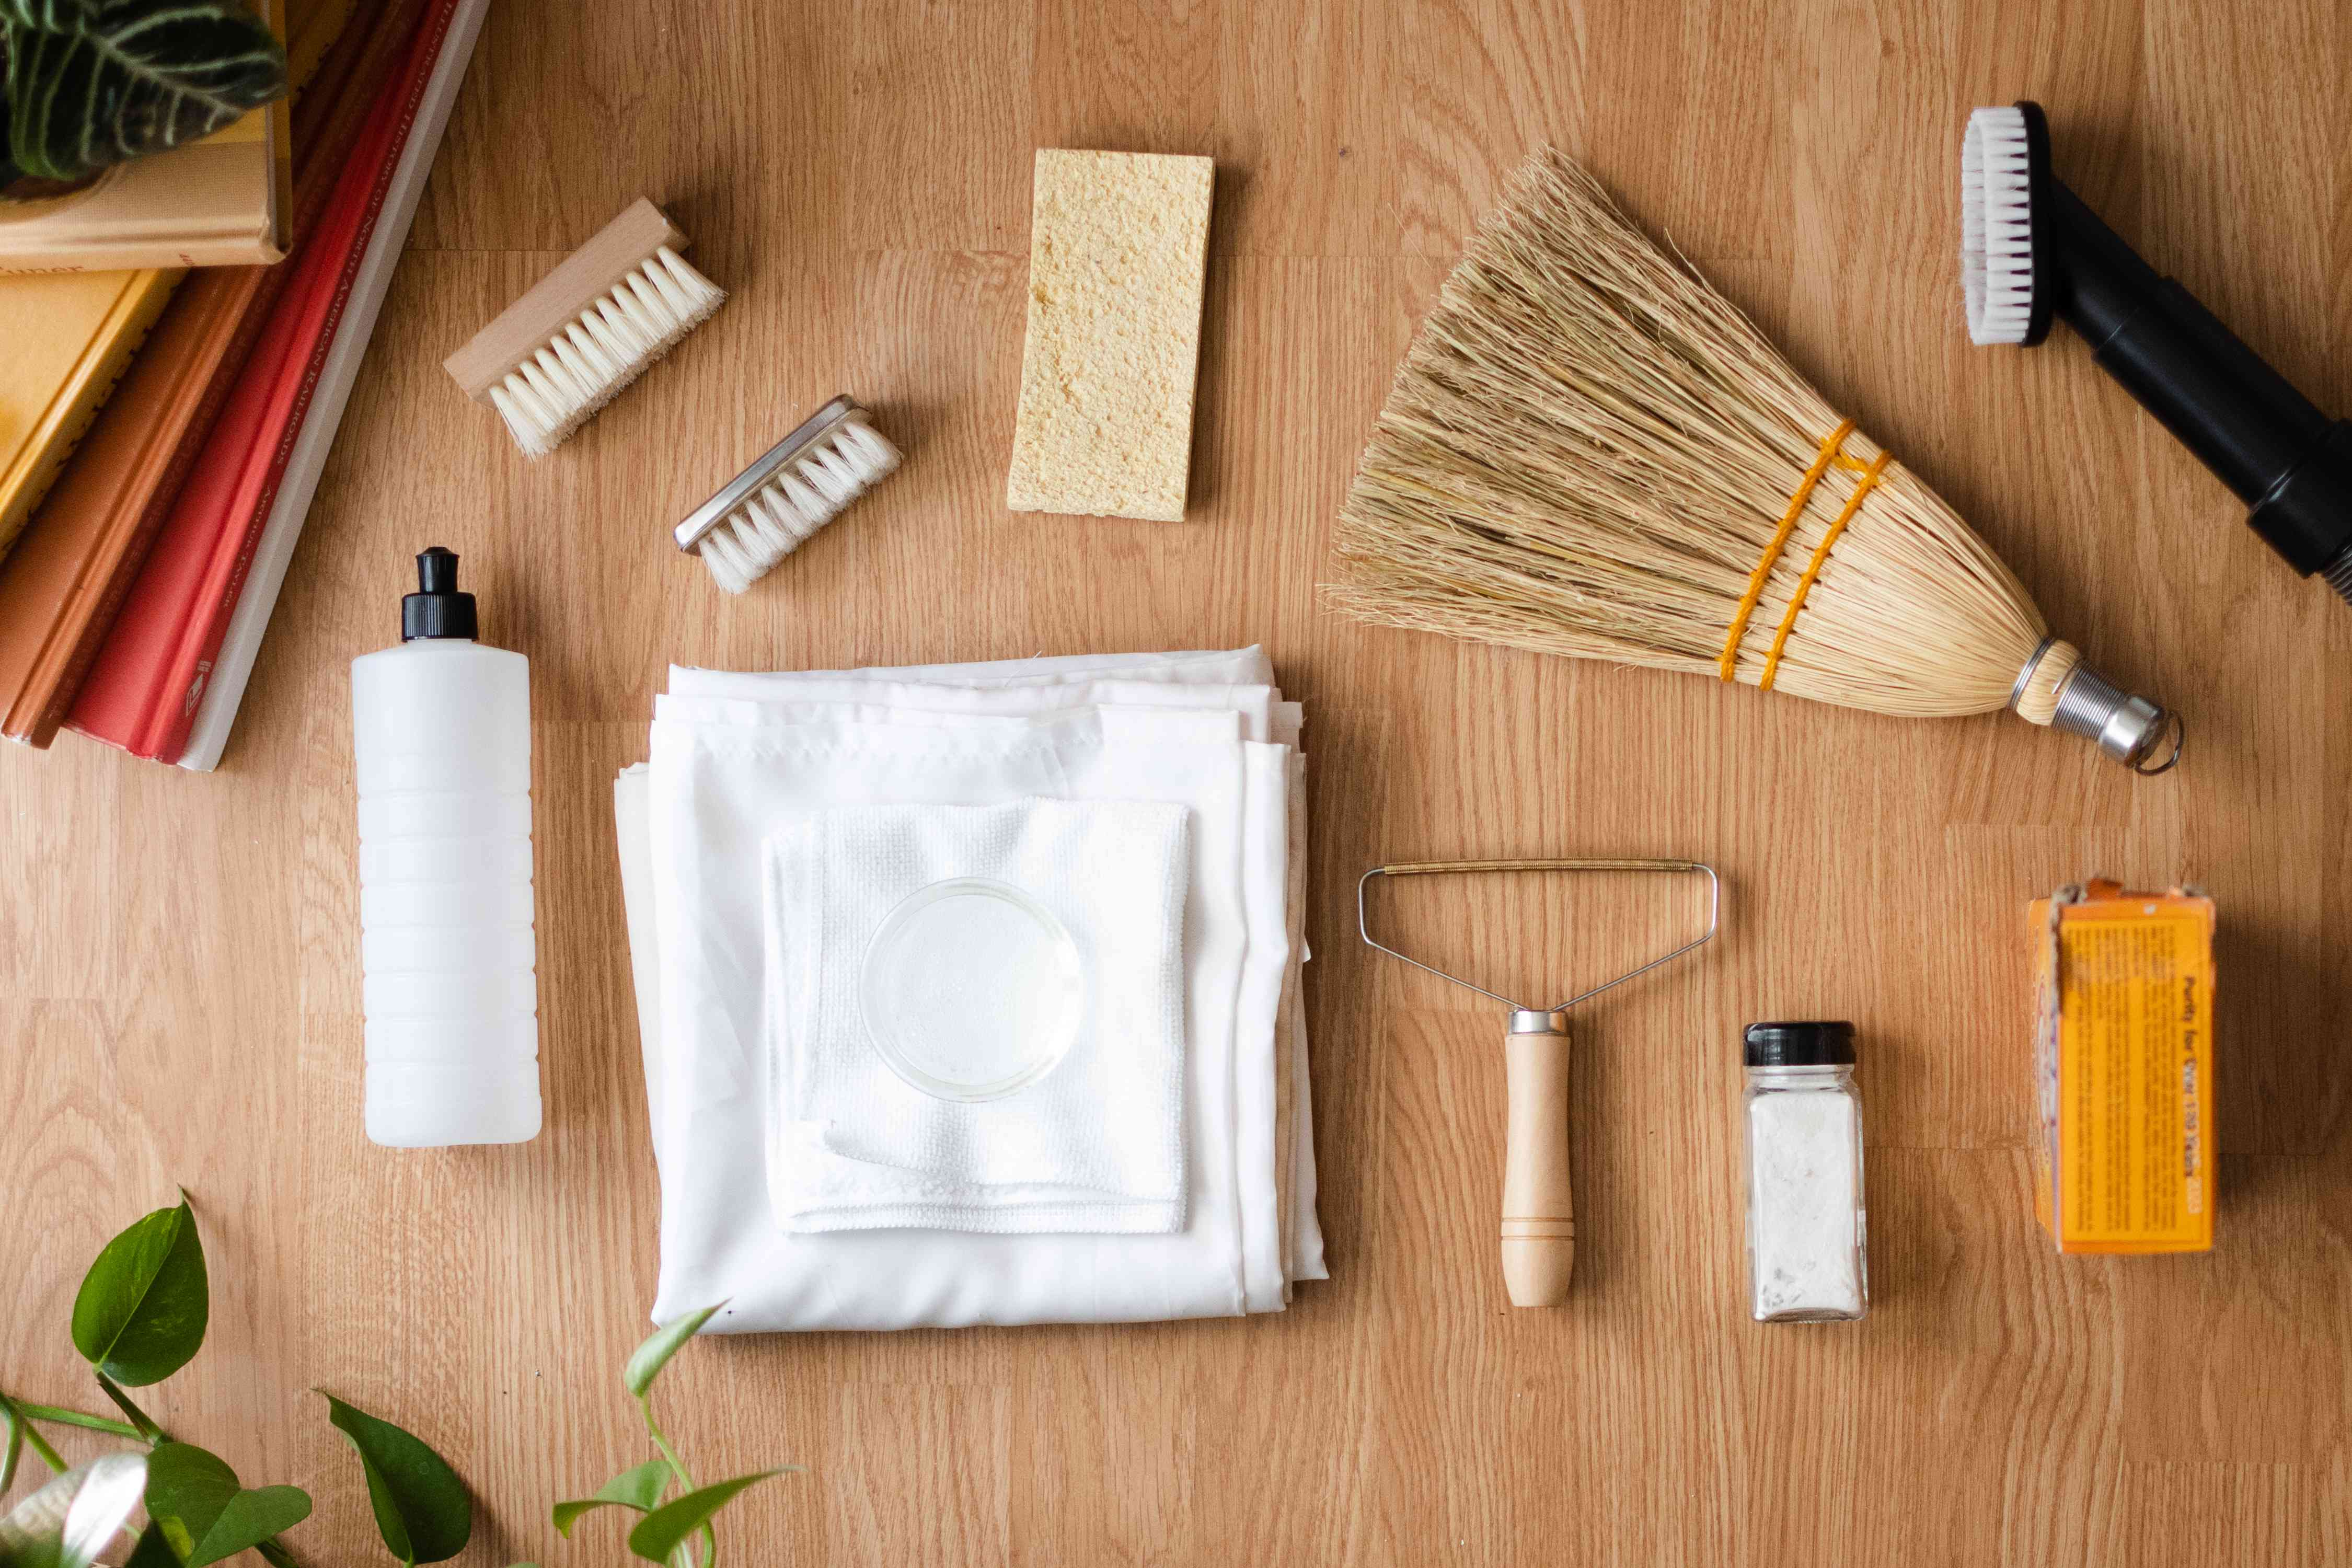 Materials and tools to clean a shag rug on wooden surface